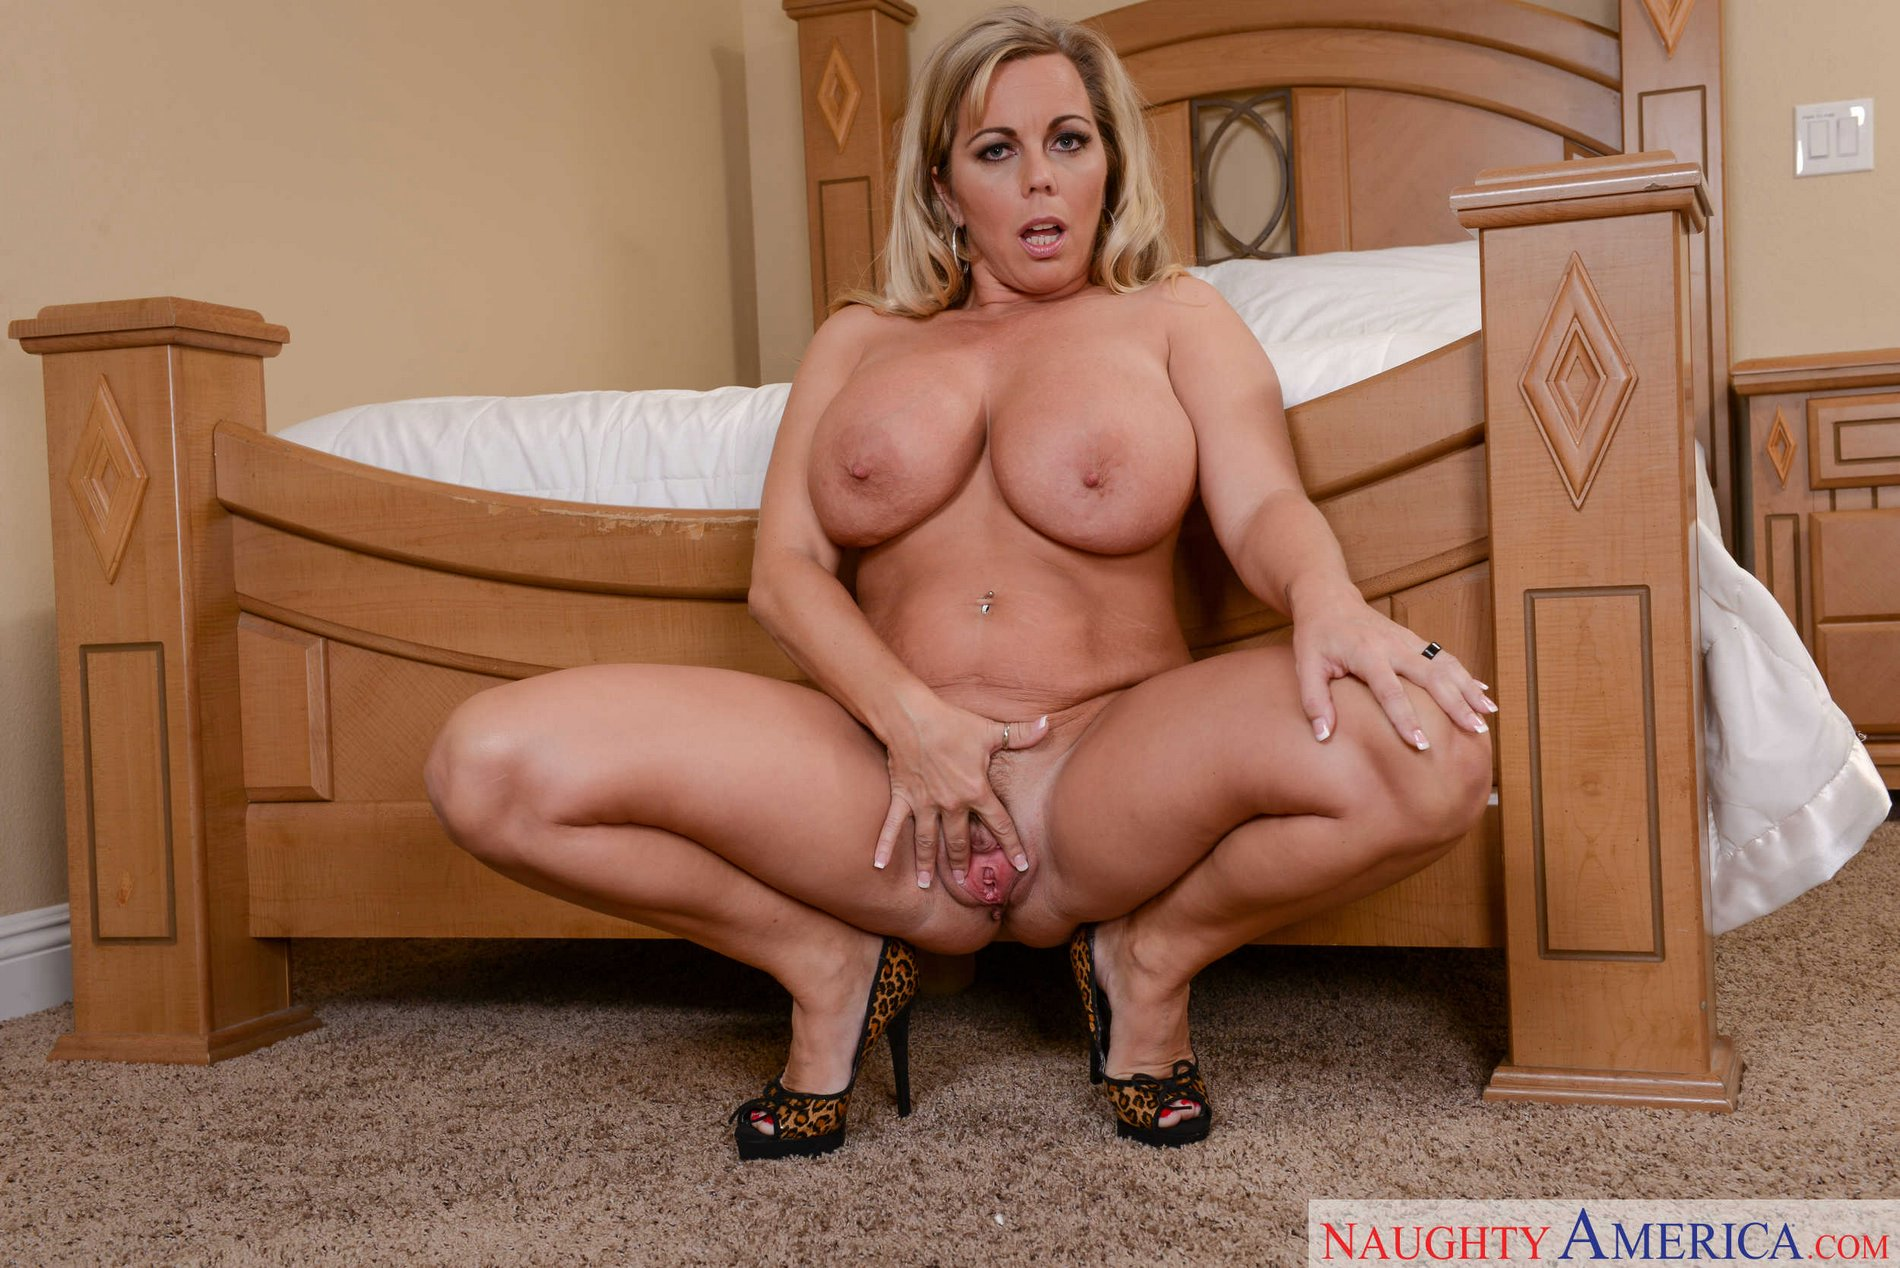 Amber Lynn Naked amber lynn bach in leopard dress strips and poses naked on